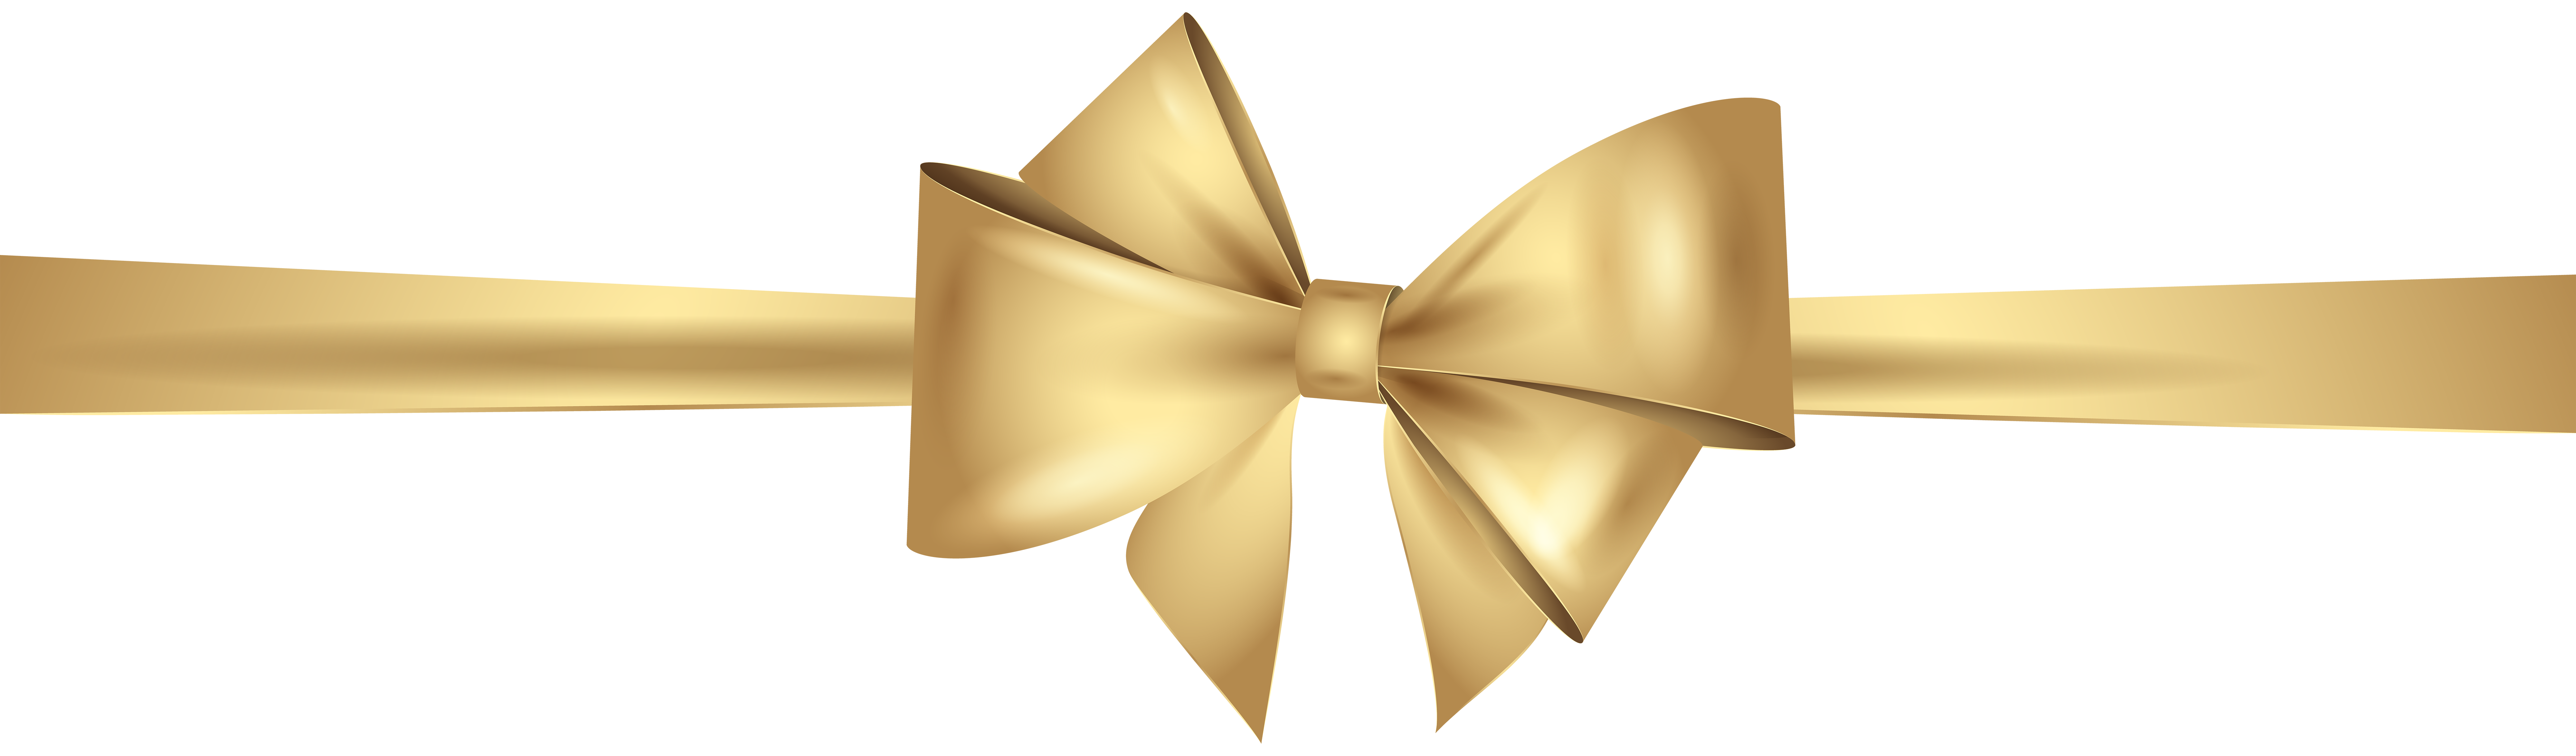 Gold Bow Png Clip Art Gallery Yopriceville High Quality Images And Transparent Png Free Clipart Free Clip Art Bow Clipart Clip Art